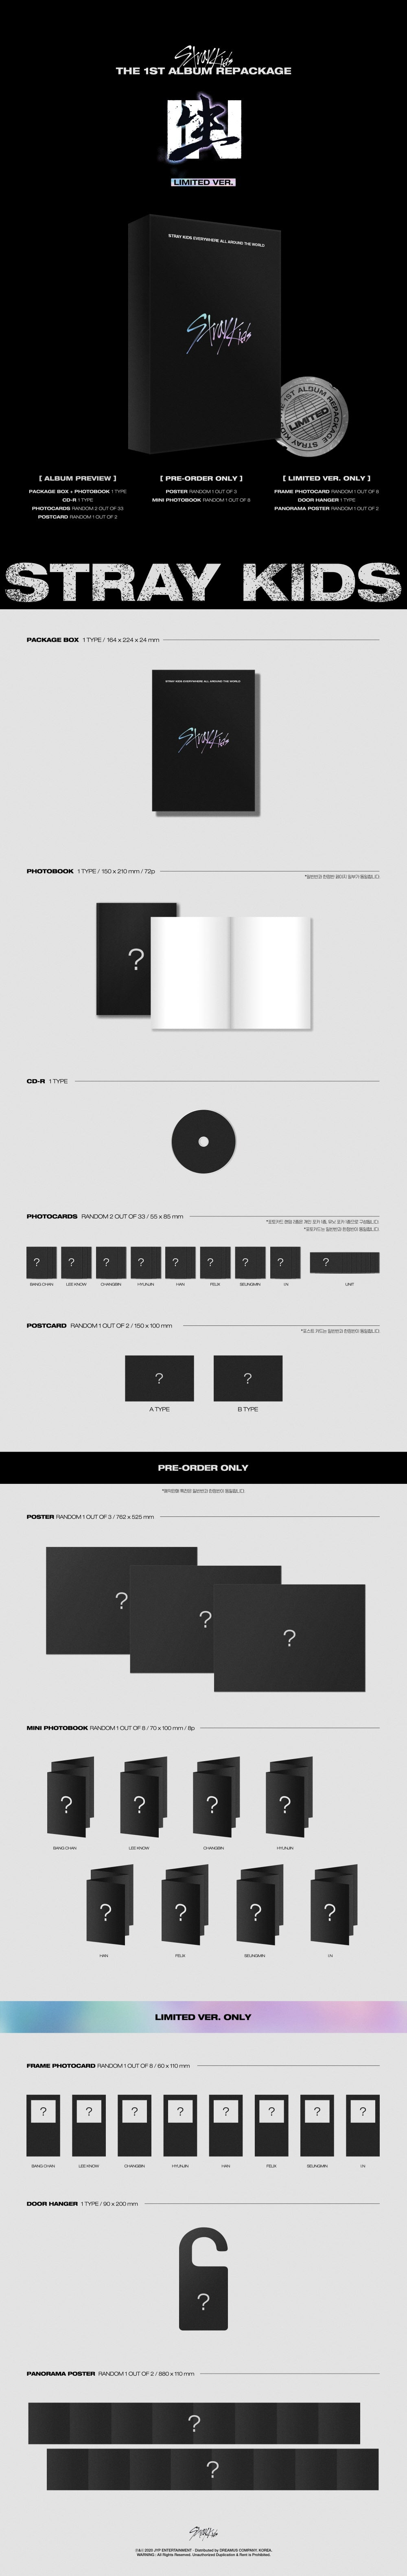 Stray Kids - IN生 (IN LIFE) (Repackage) (Limited Edition) - Riyadh - Saudi Arabia - Cash On Delivery - Kshopina